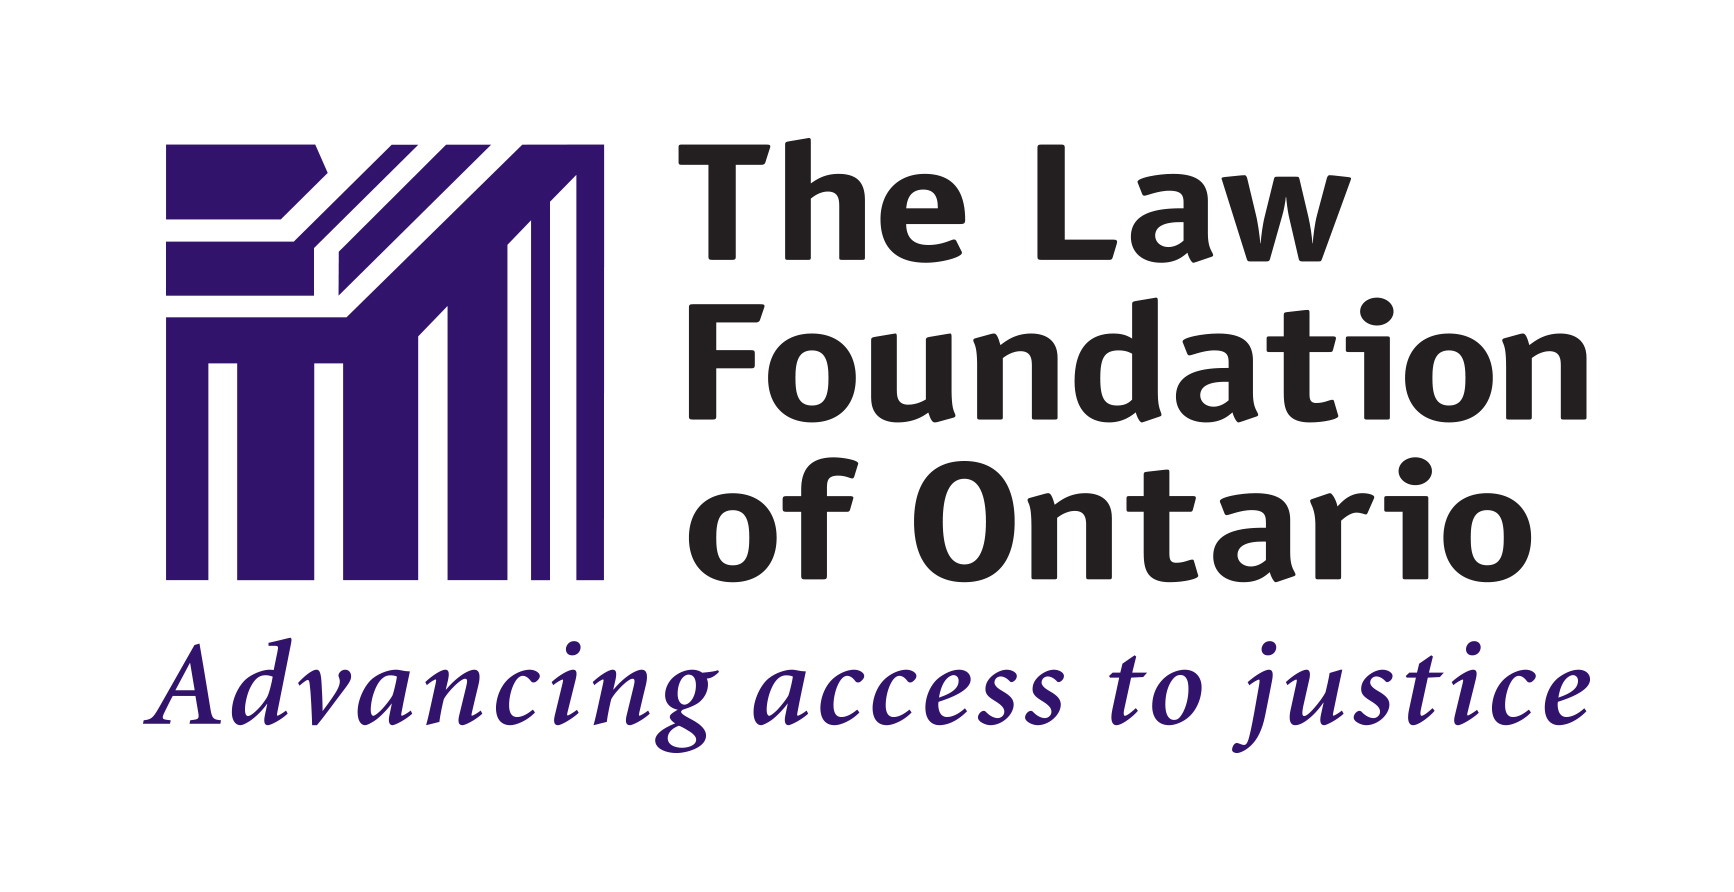 Logo: Law Foundation of Ontario. Text byline: Advancing access to justice.